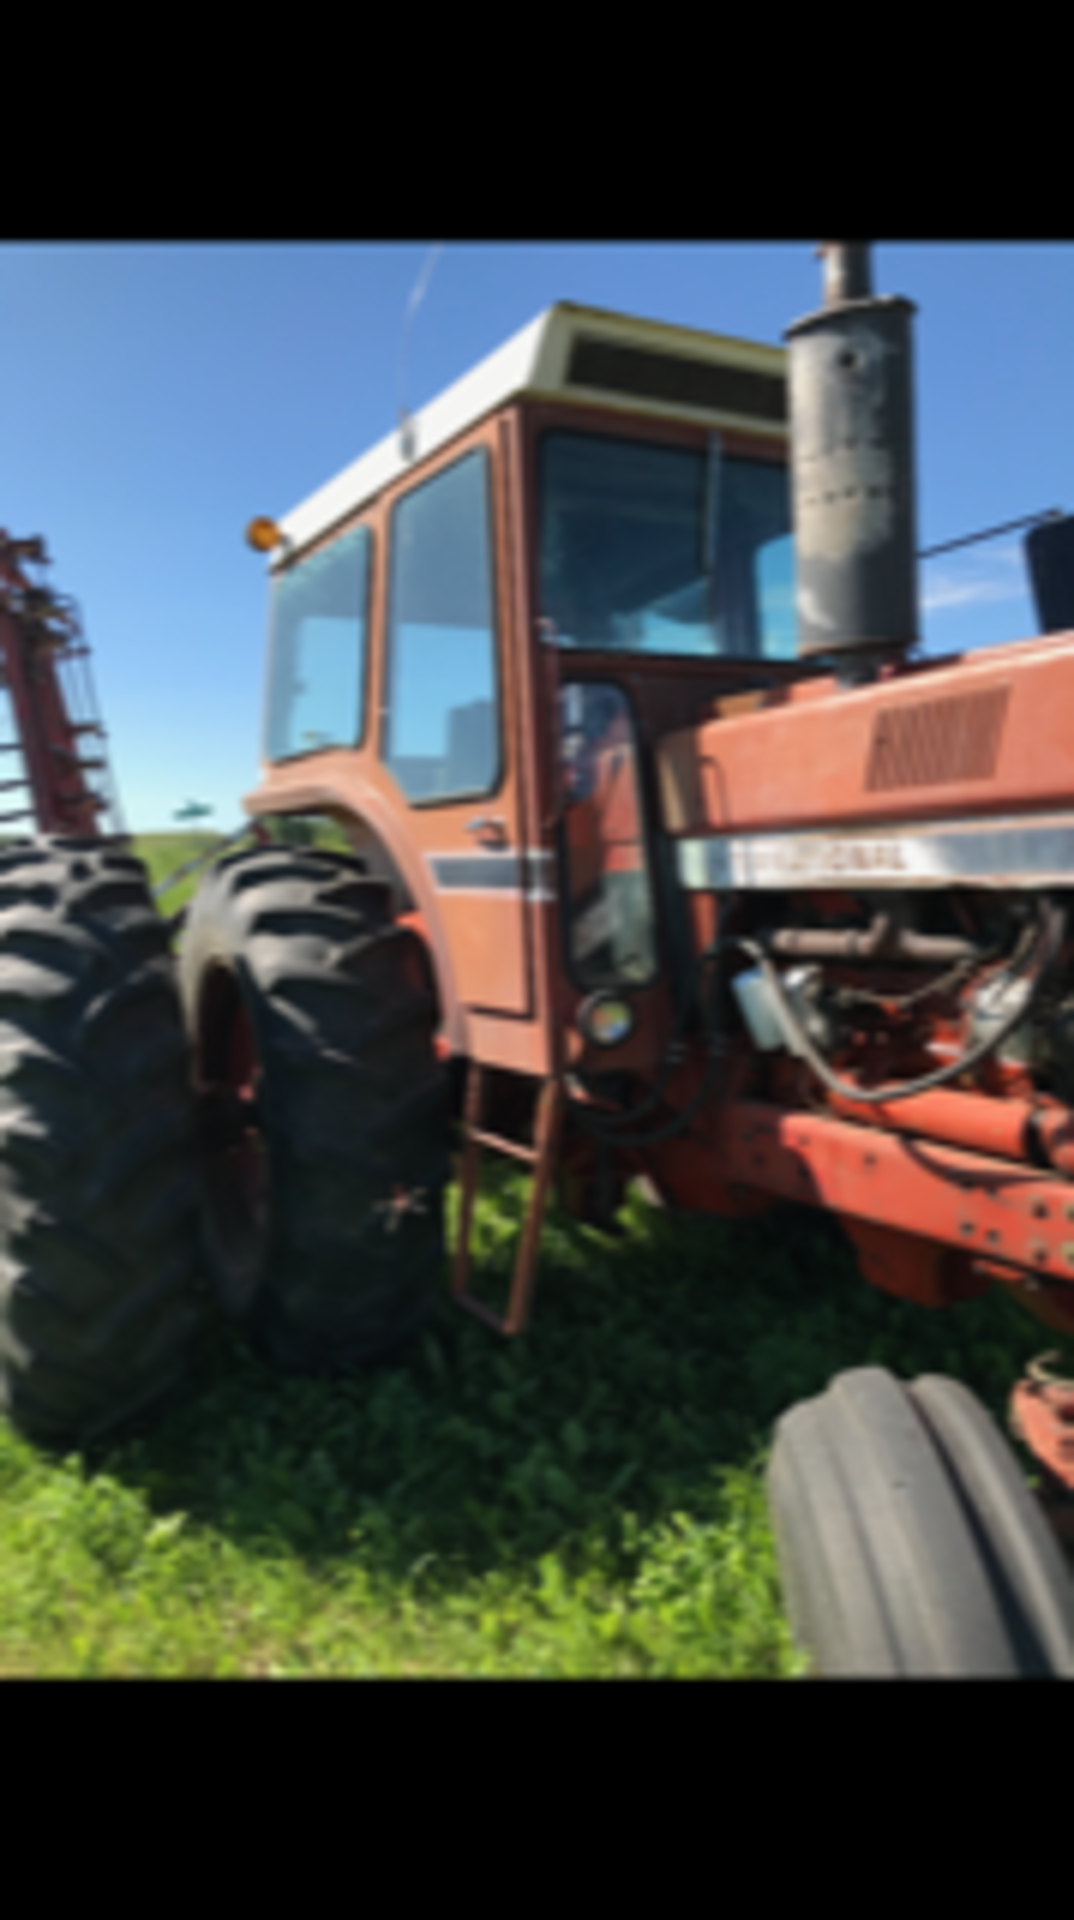 IHC 1466 Tractor, cab,540 - 1000 pto, 6979 hrs. showing sn:2650134U030334 - Image 4 of 5